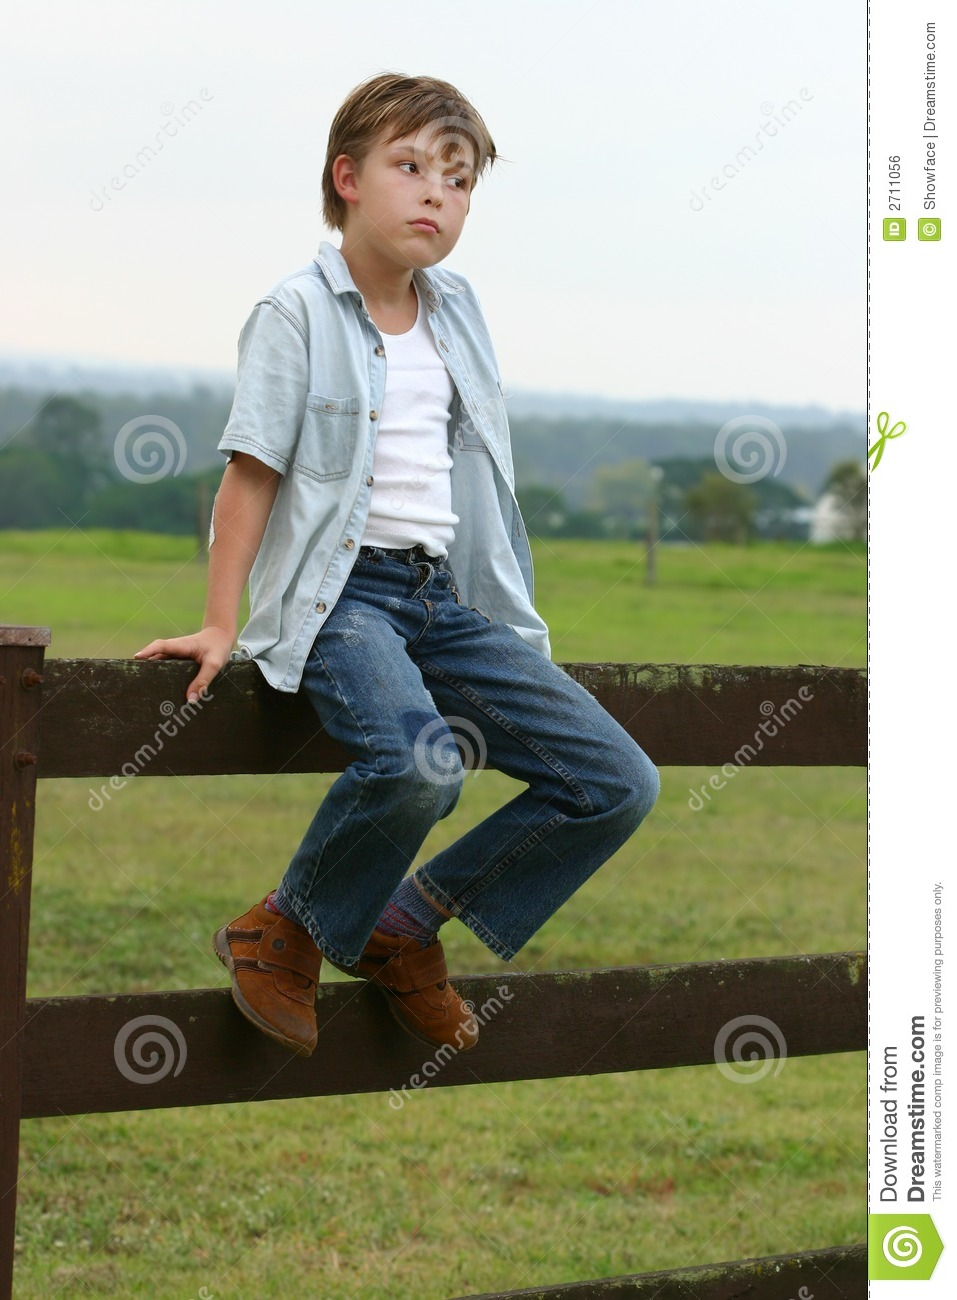 Country boy sitting on a fence